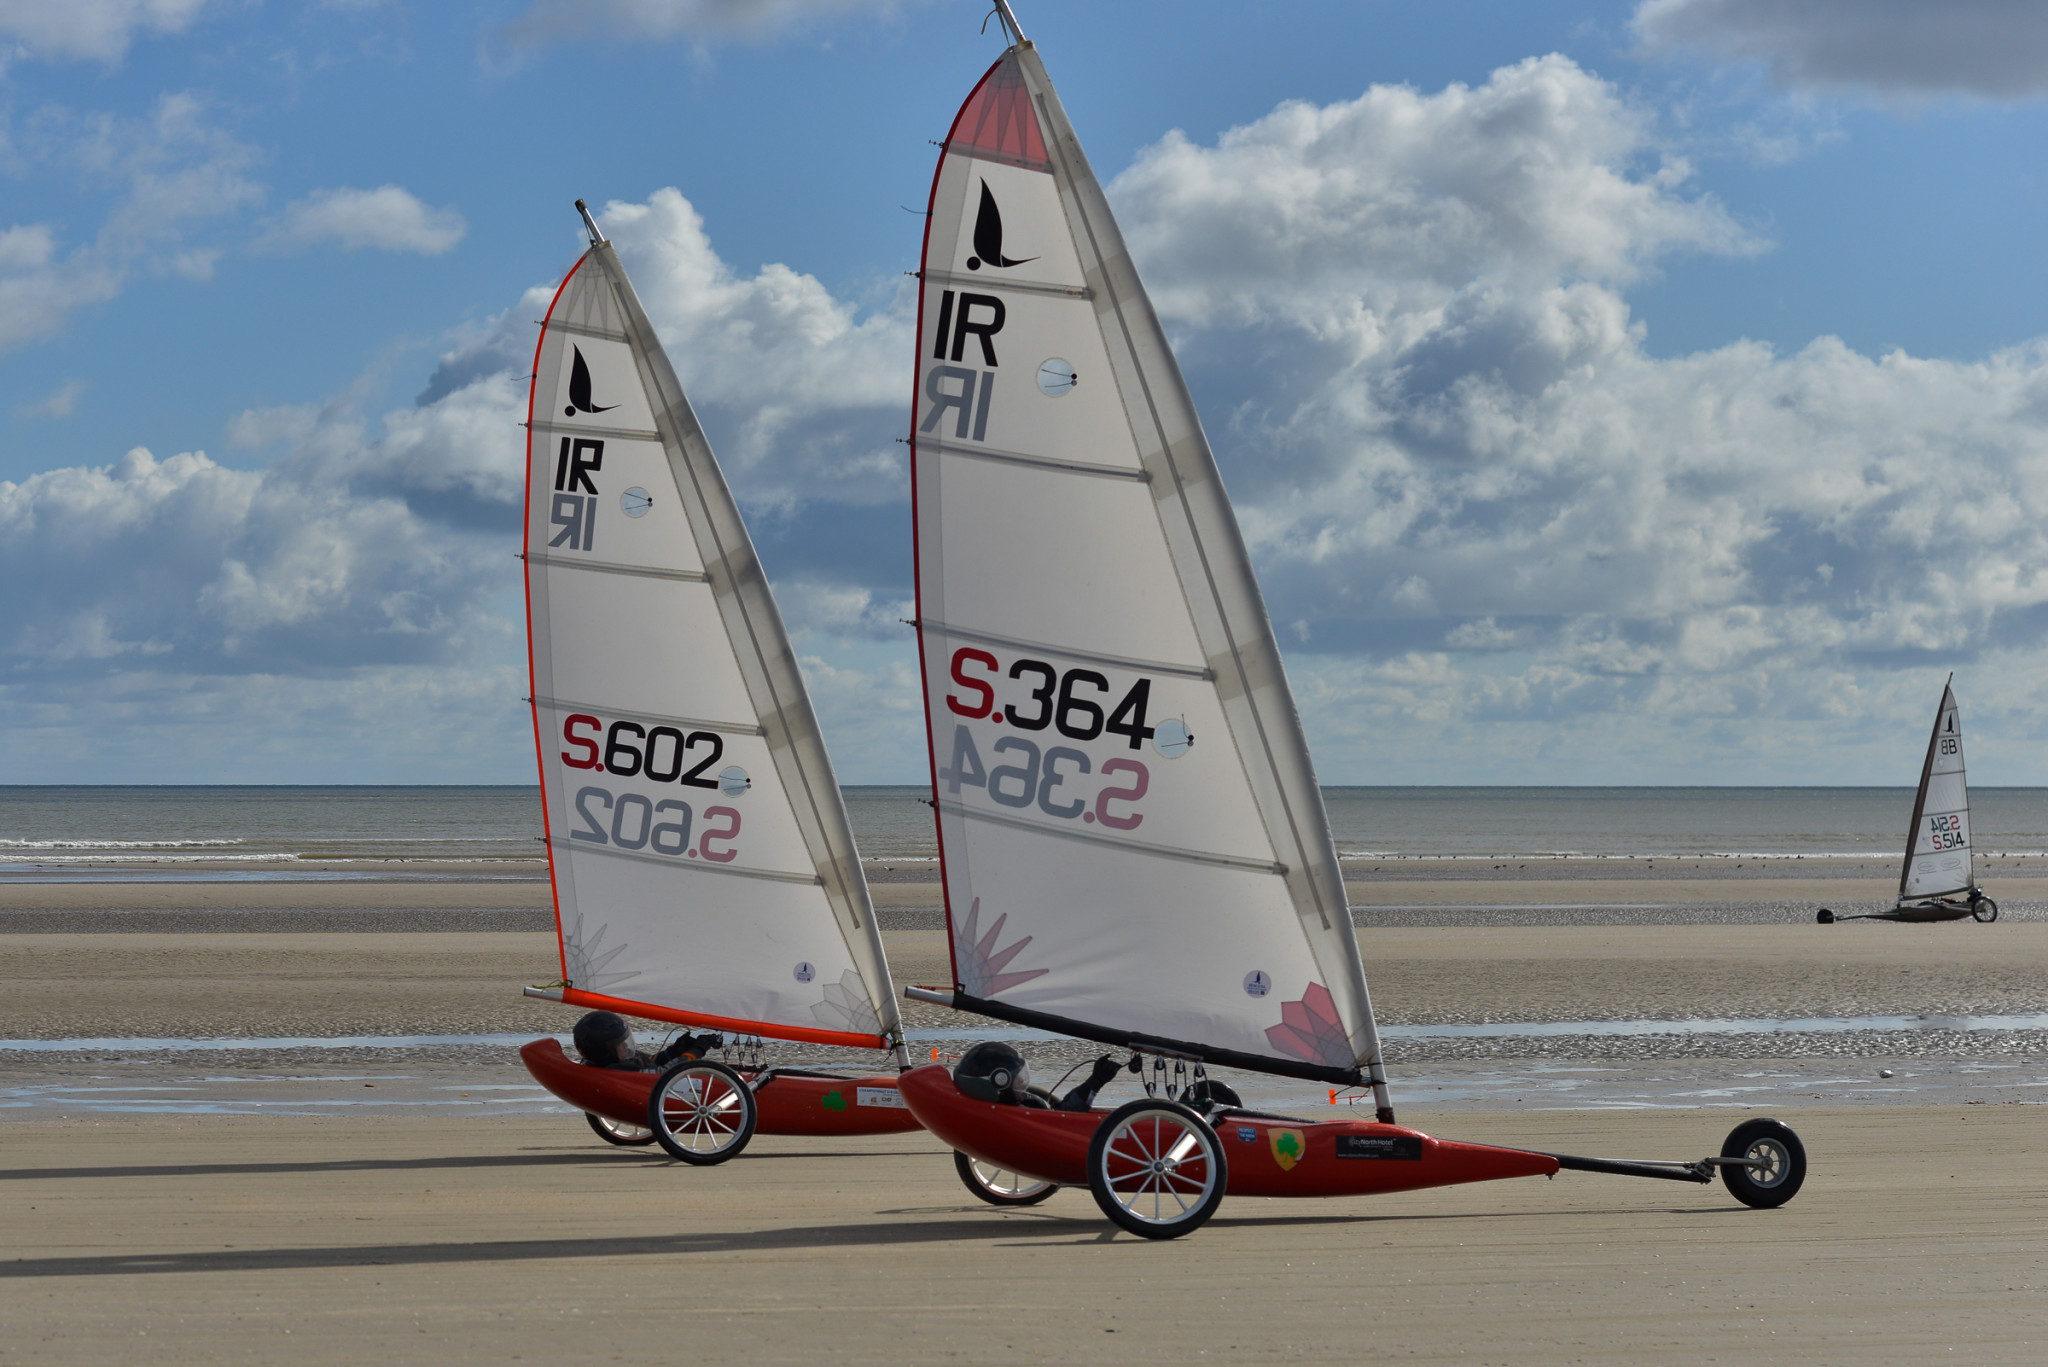 The 52nd edition of the European Landsailing Championships were held in England and Ireland last year ©GAISF